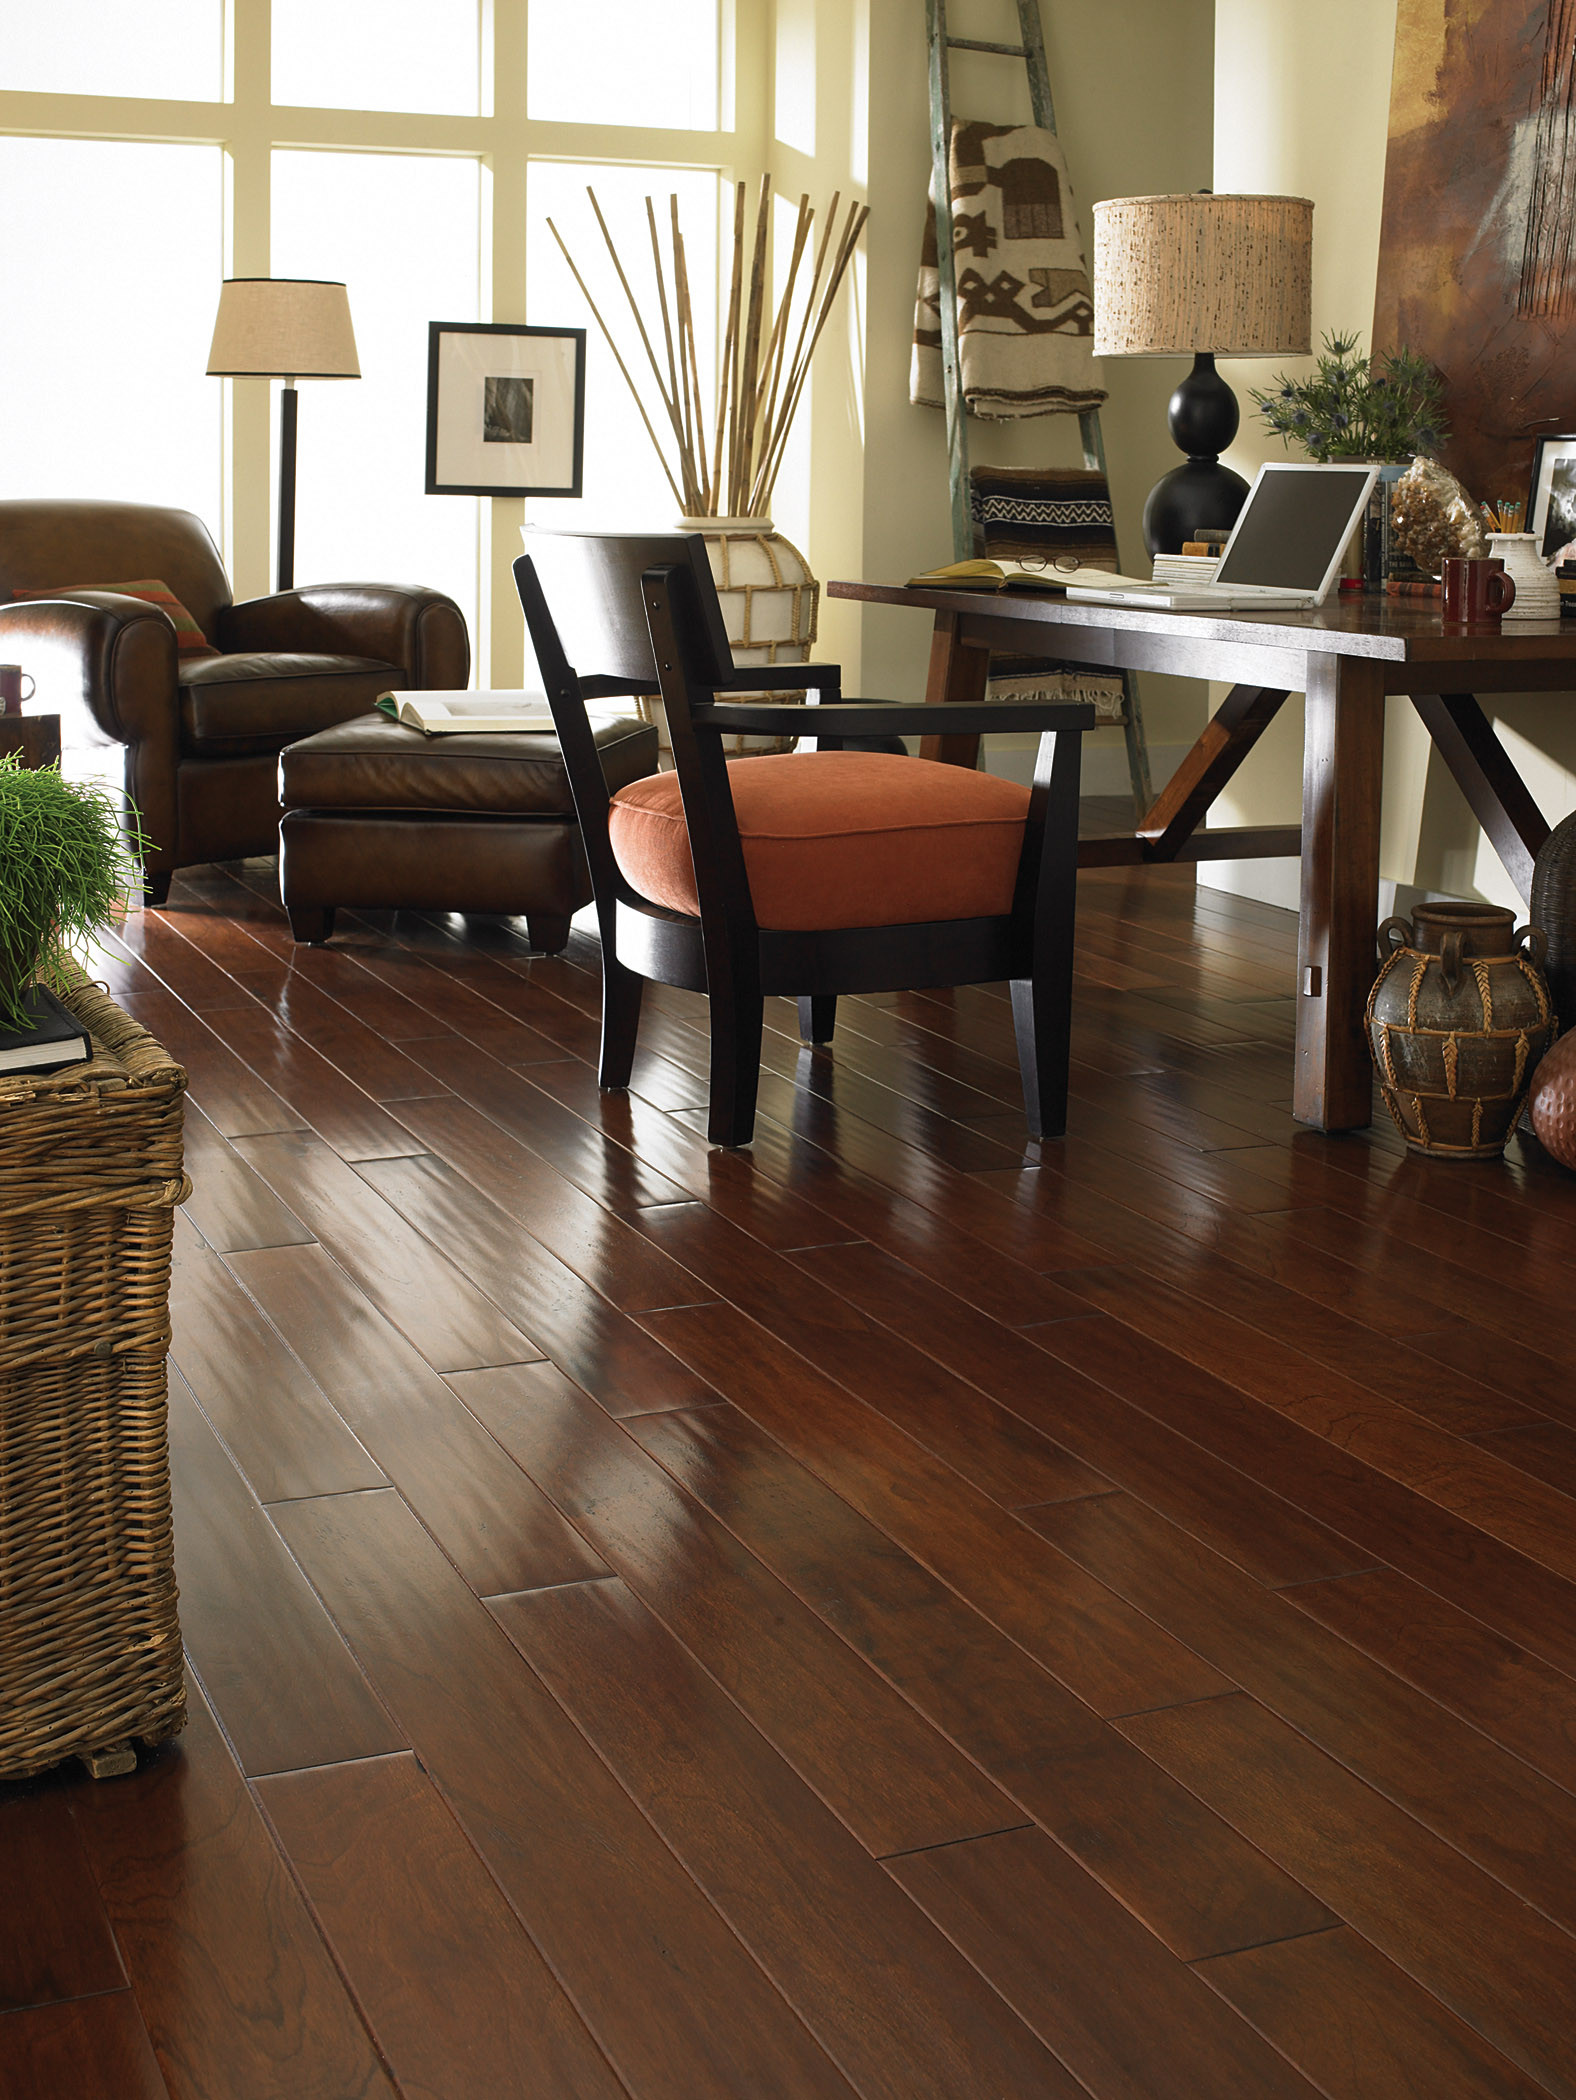 costco hardwood flooring sale of costco shaw flooring reviews 50 fresh shaw laminate flooring reviews within floor shaw engineered hardwood flooring costco shaw flooring reviews houston lifestyles homes magazine flooring trends houston